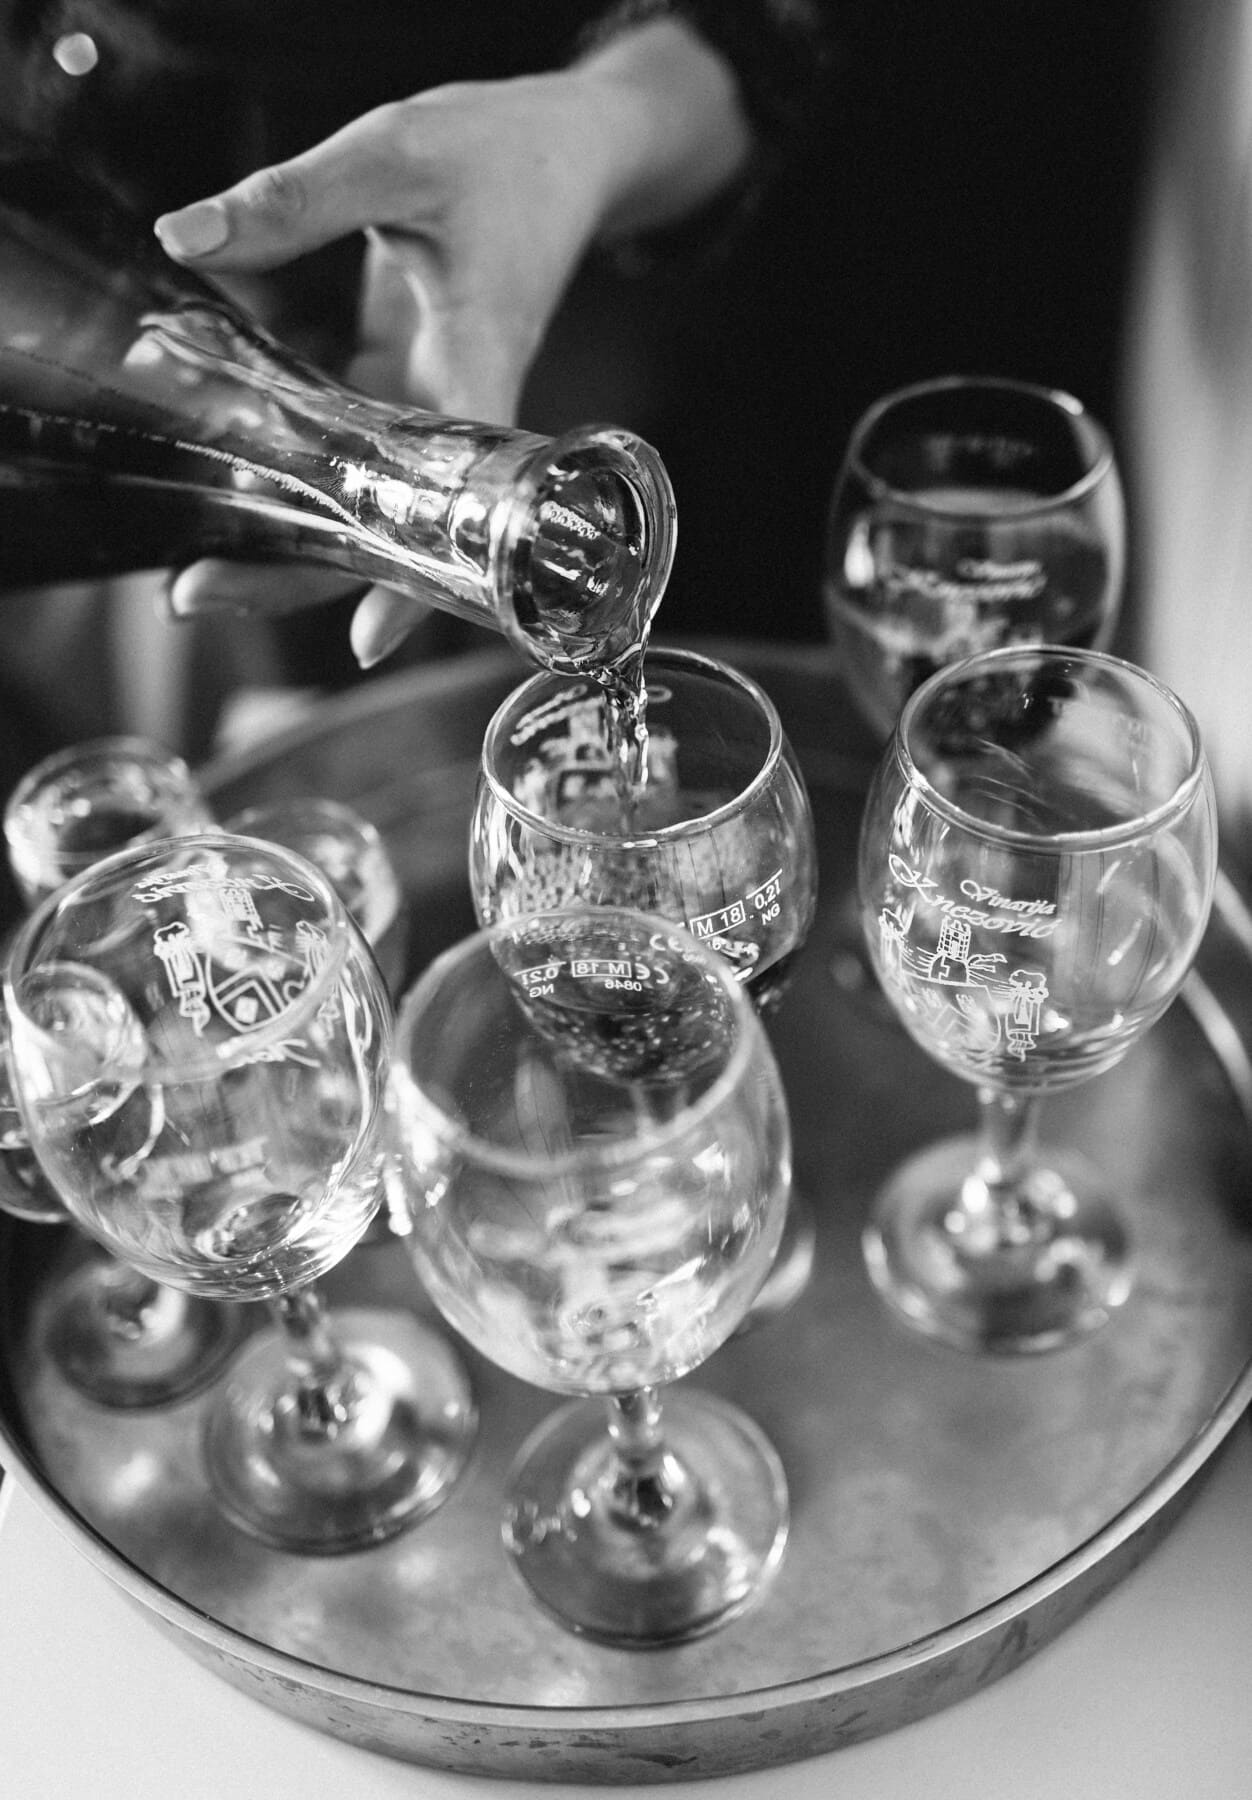 bottle, glass, bartender, crystal, wine, red wine, winery, black and white, alcohol, monochrome